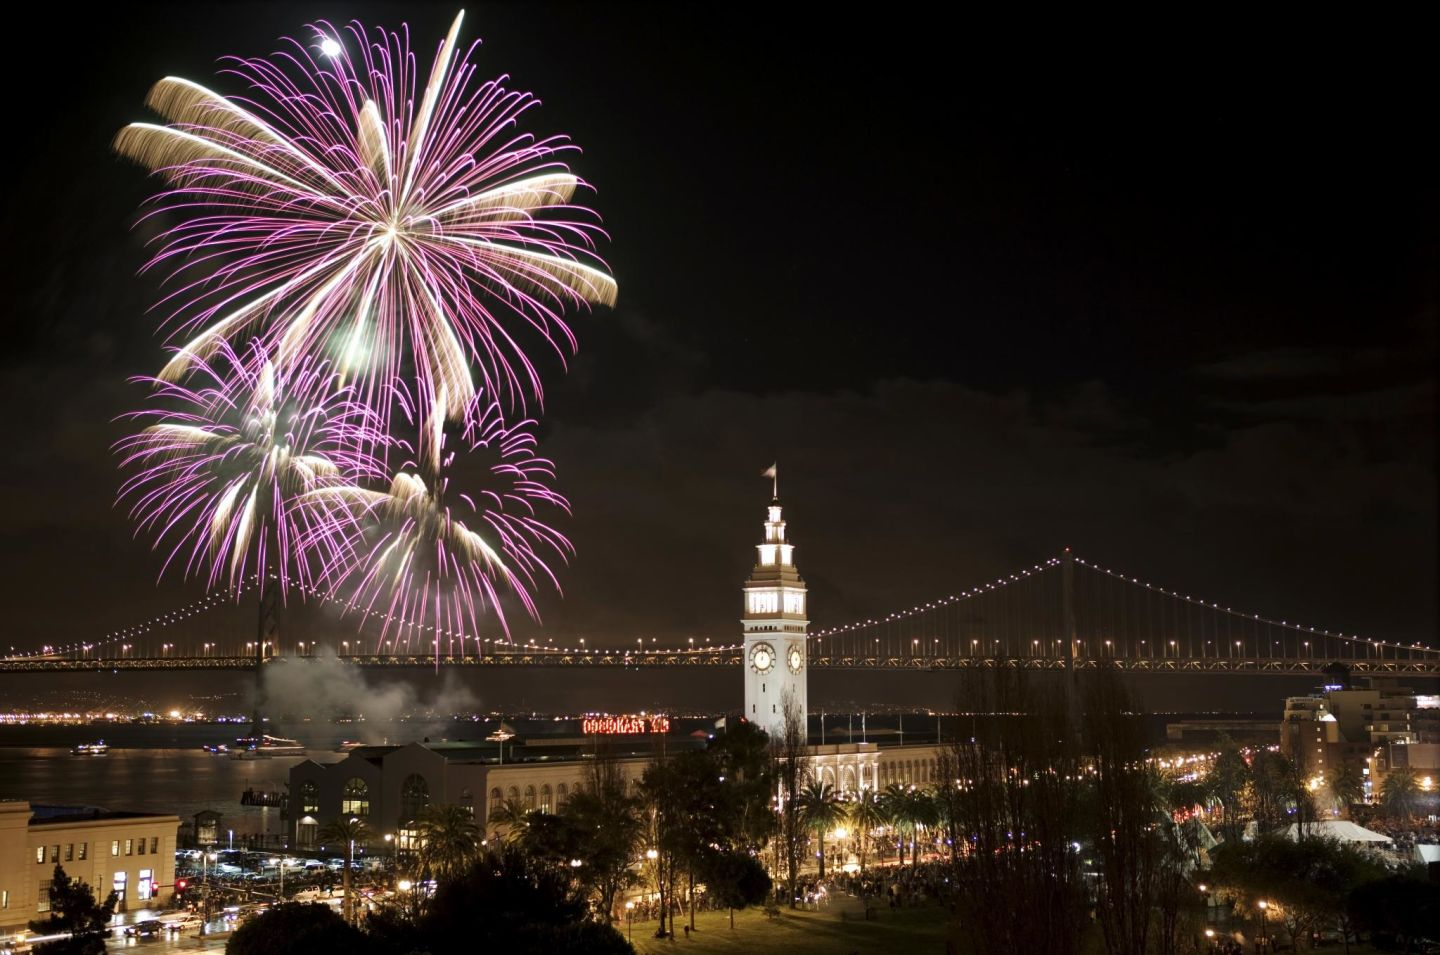 Your Bay Area Guide to Getting Home Safely This New Year's Eve